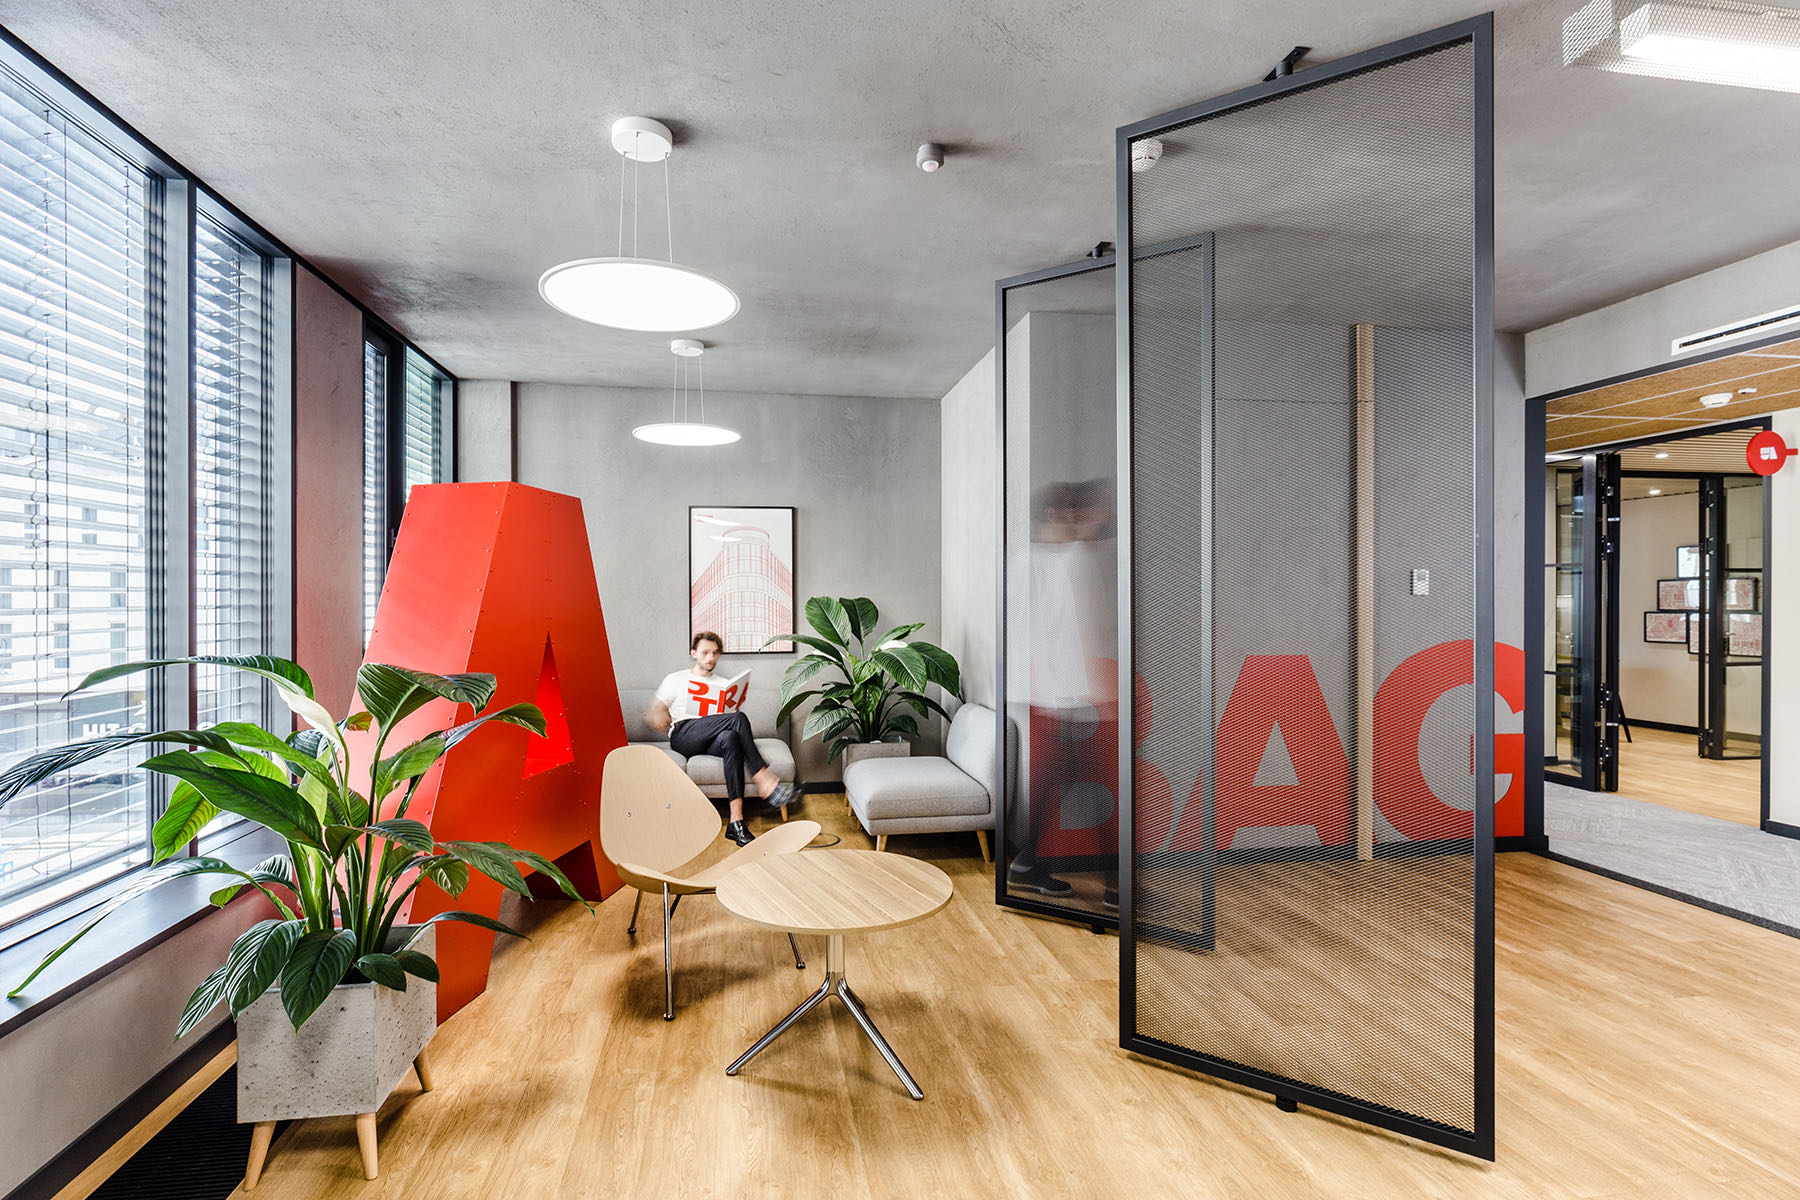 A Tour Of STRABAG's New Warsaw Office